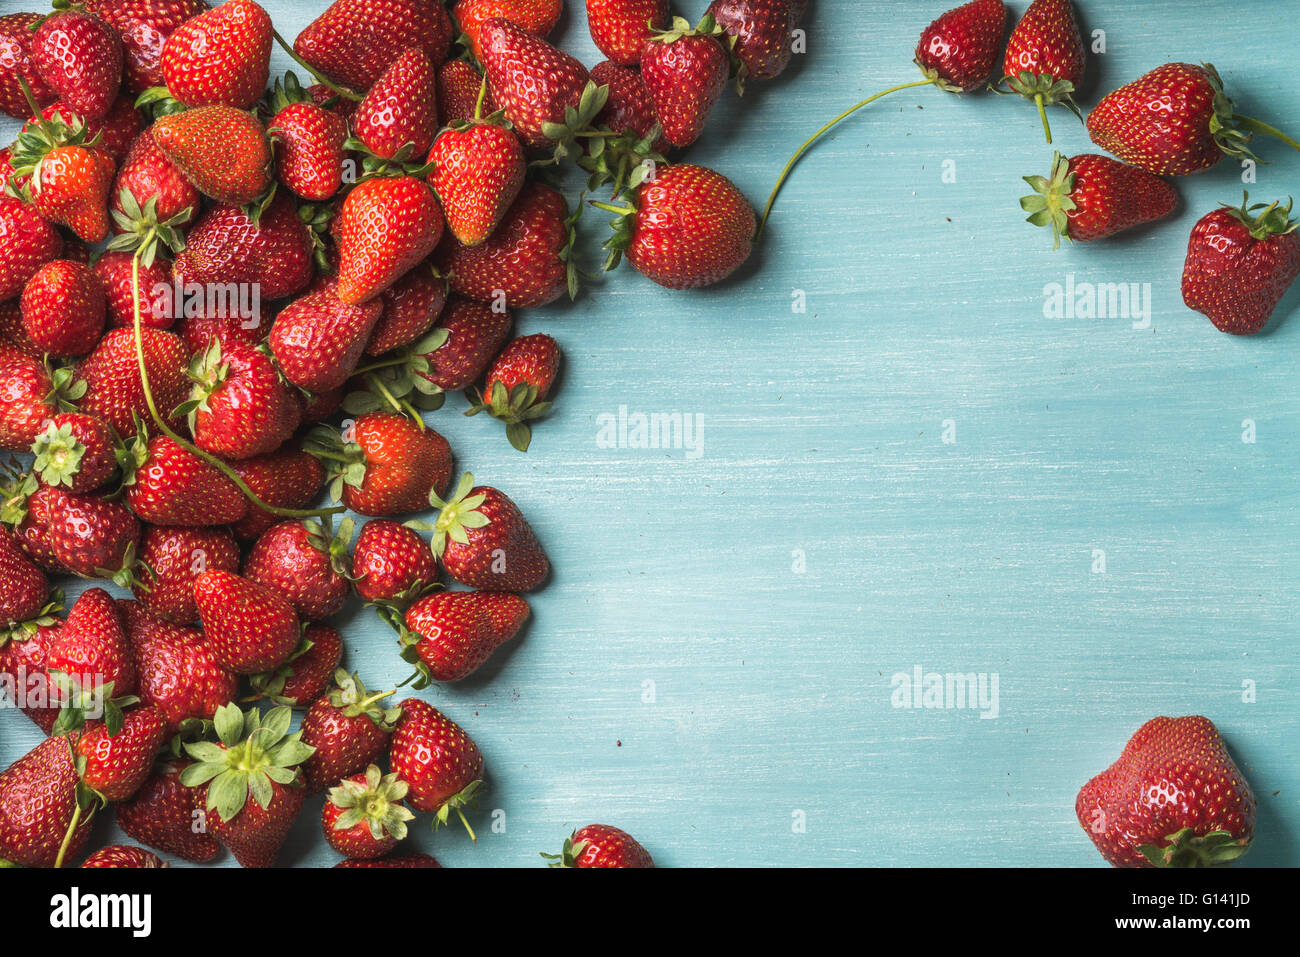 Summer fruit food frame. Strawberries over turquoise blue painted wooden background. Top view, copy space - Stock Image